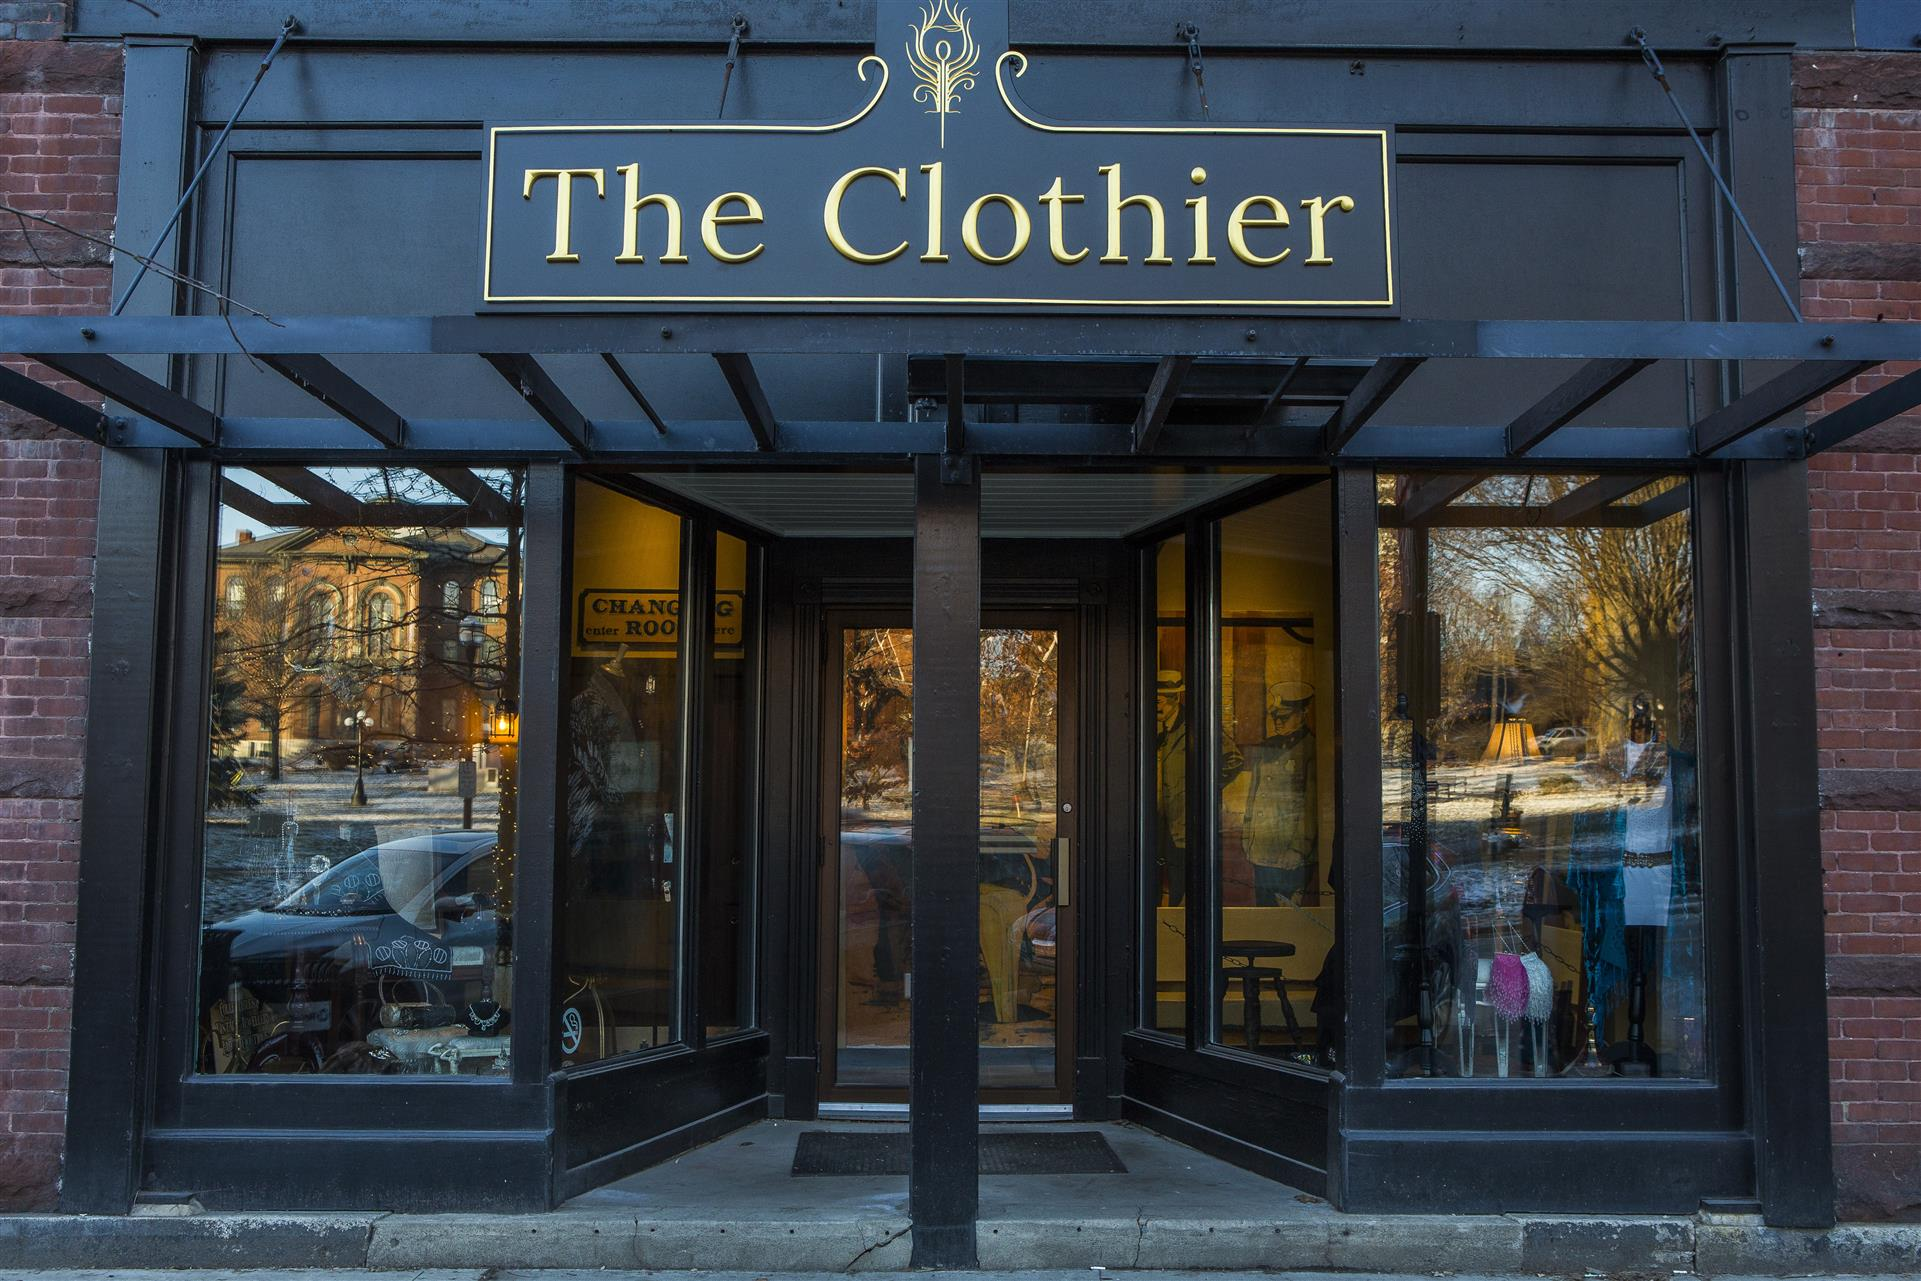 the front entrance of the clothier